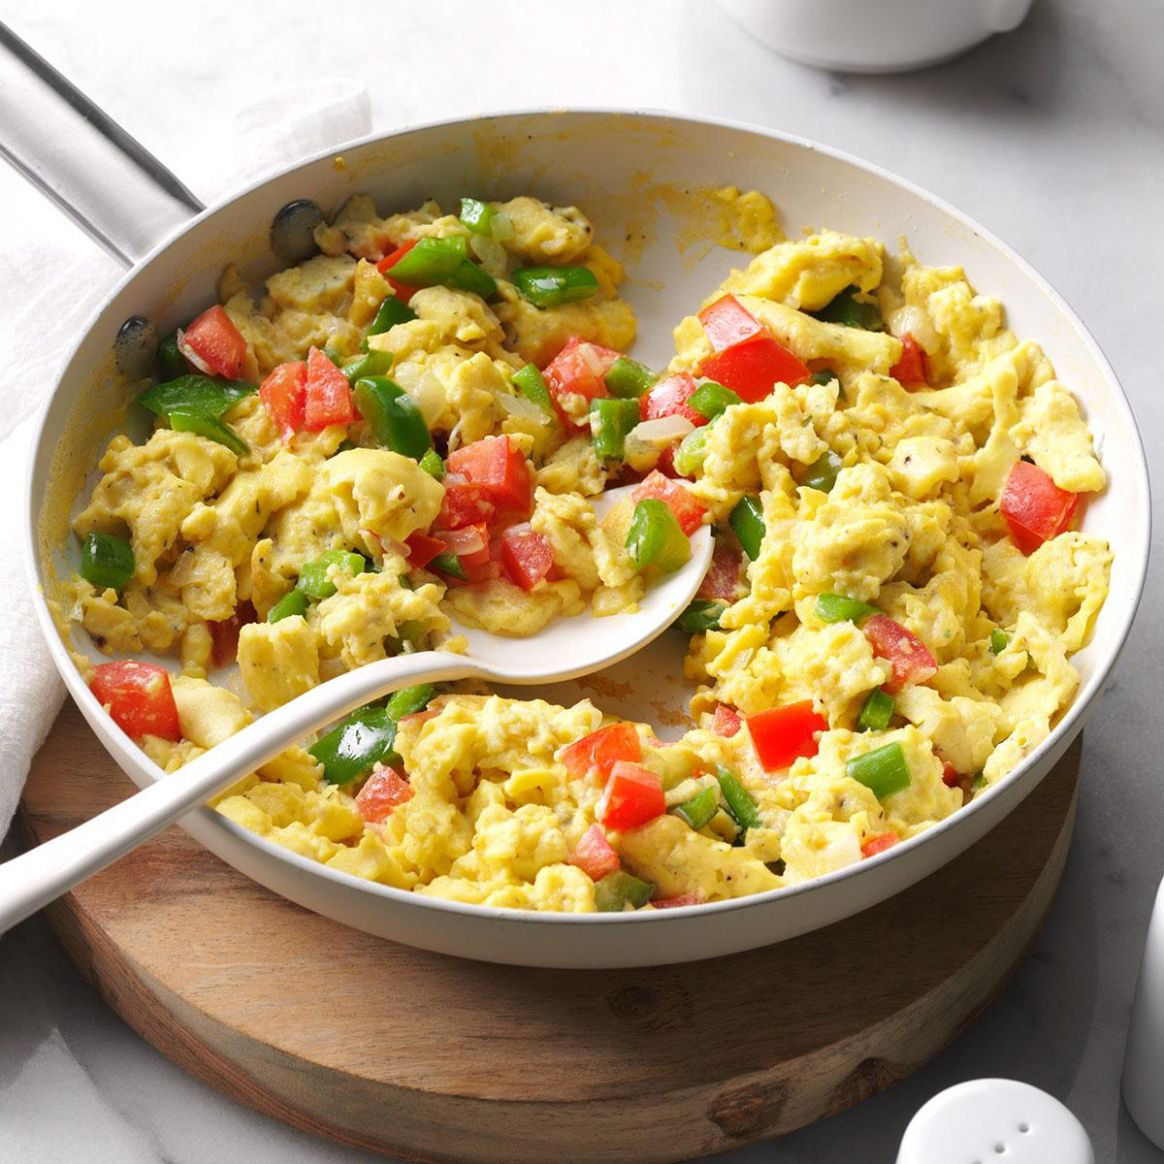 Calico Scrambled Eggs - Breakfast Recipes You Could Make With Eggs